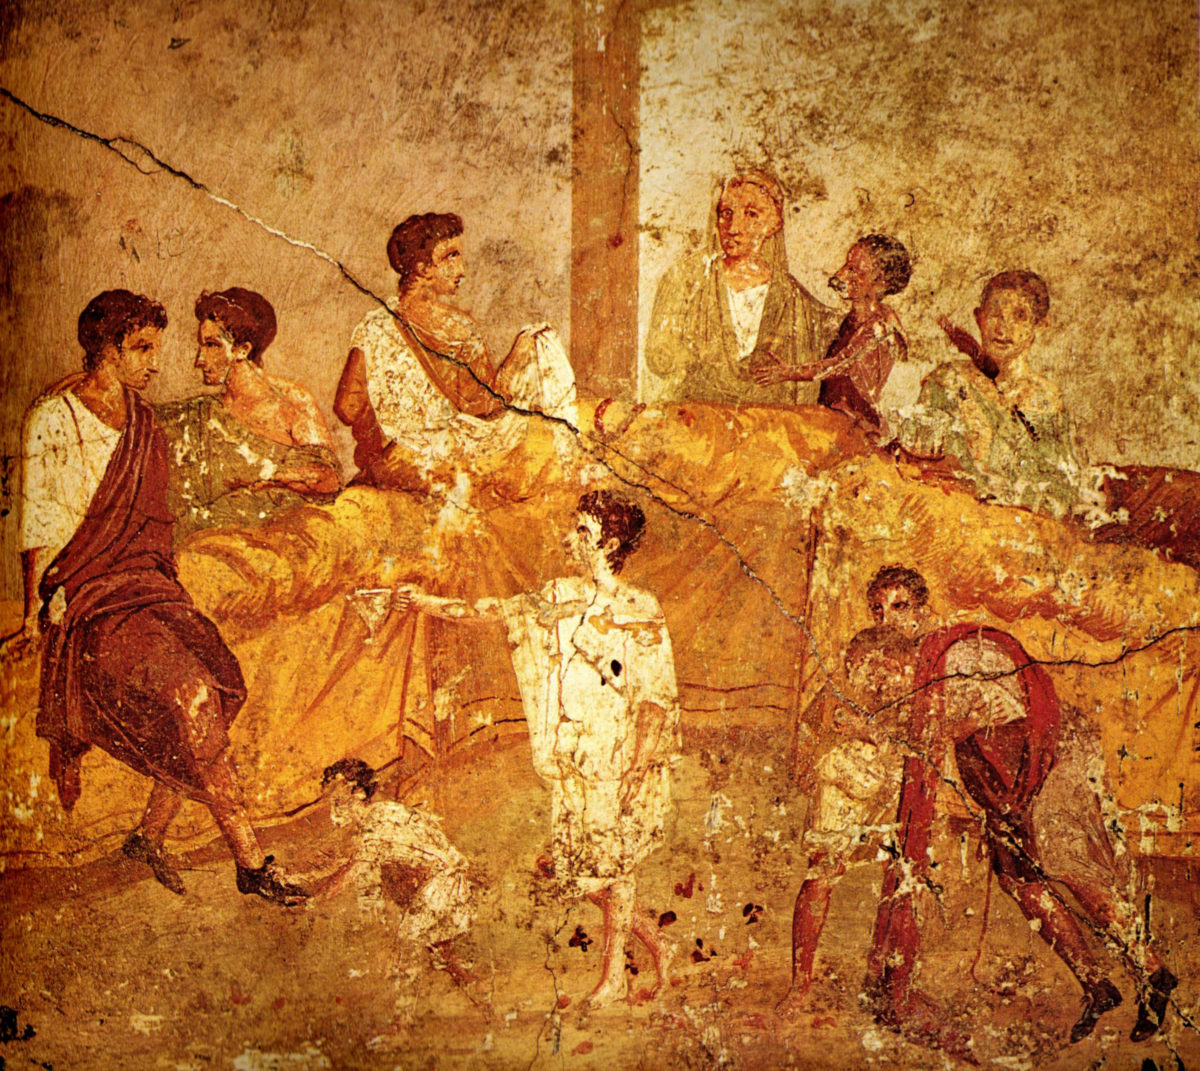 Wall painting (1st century AD) from Pompeii depicting a multigenerational banquet.